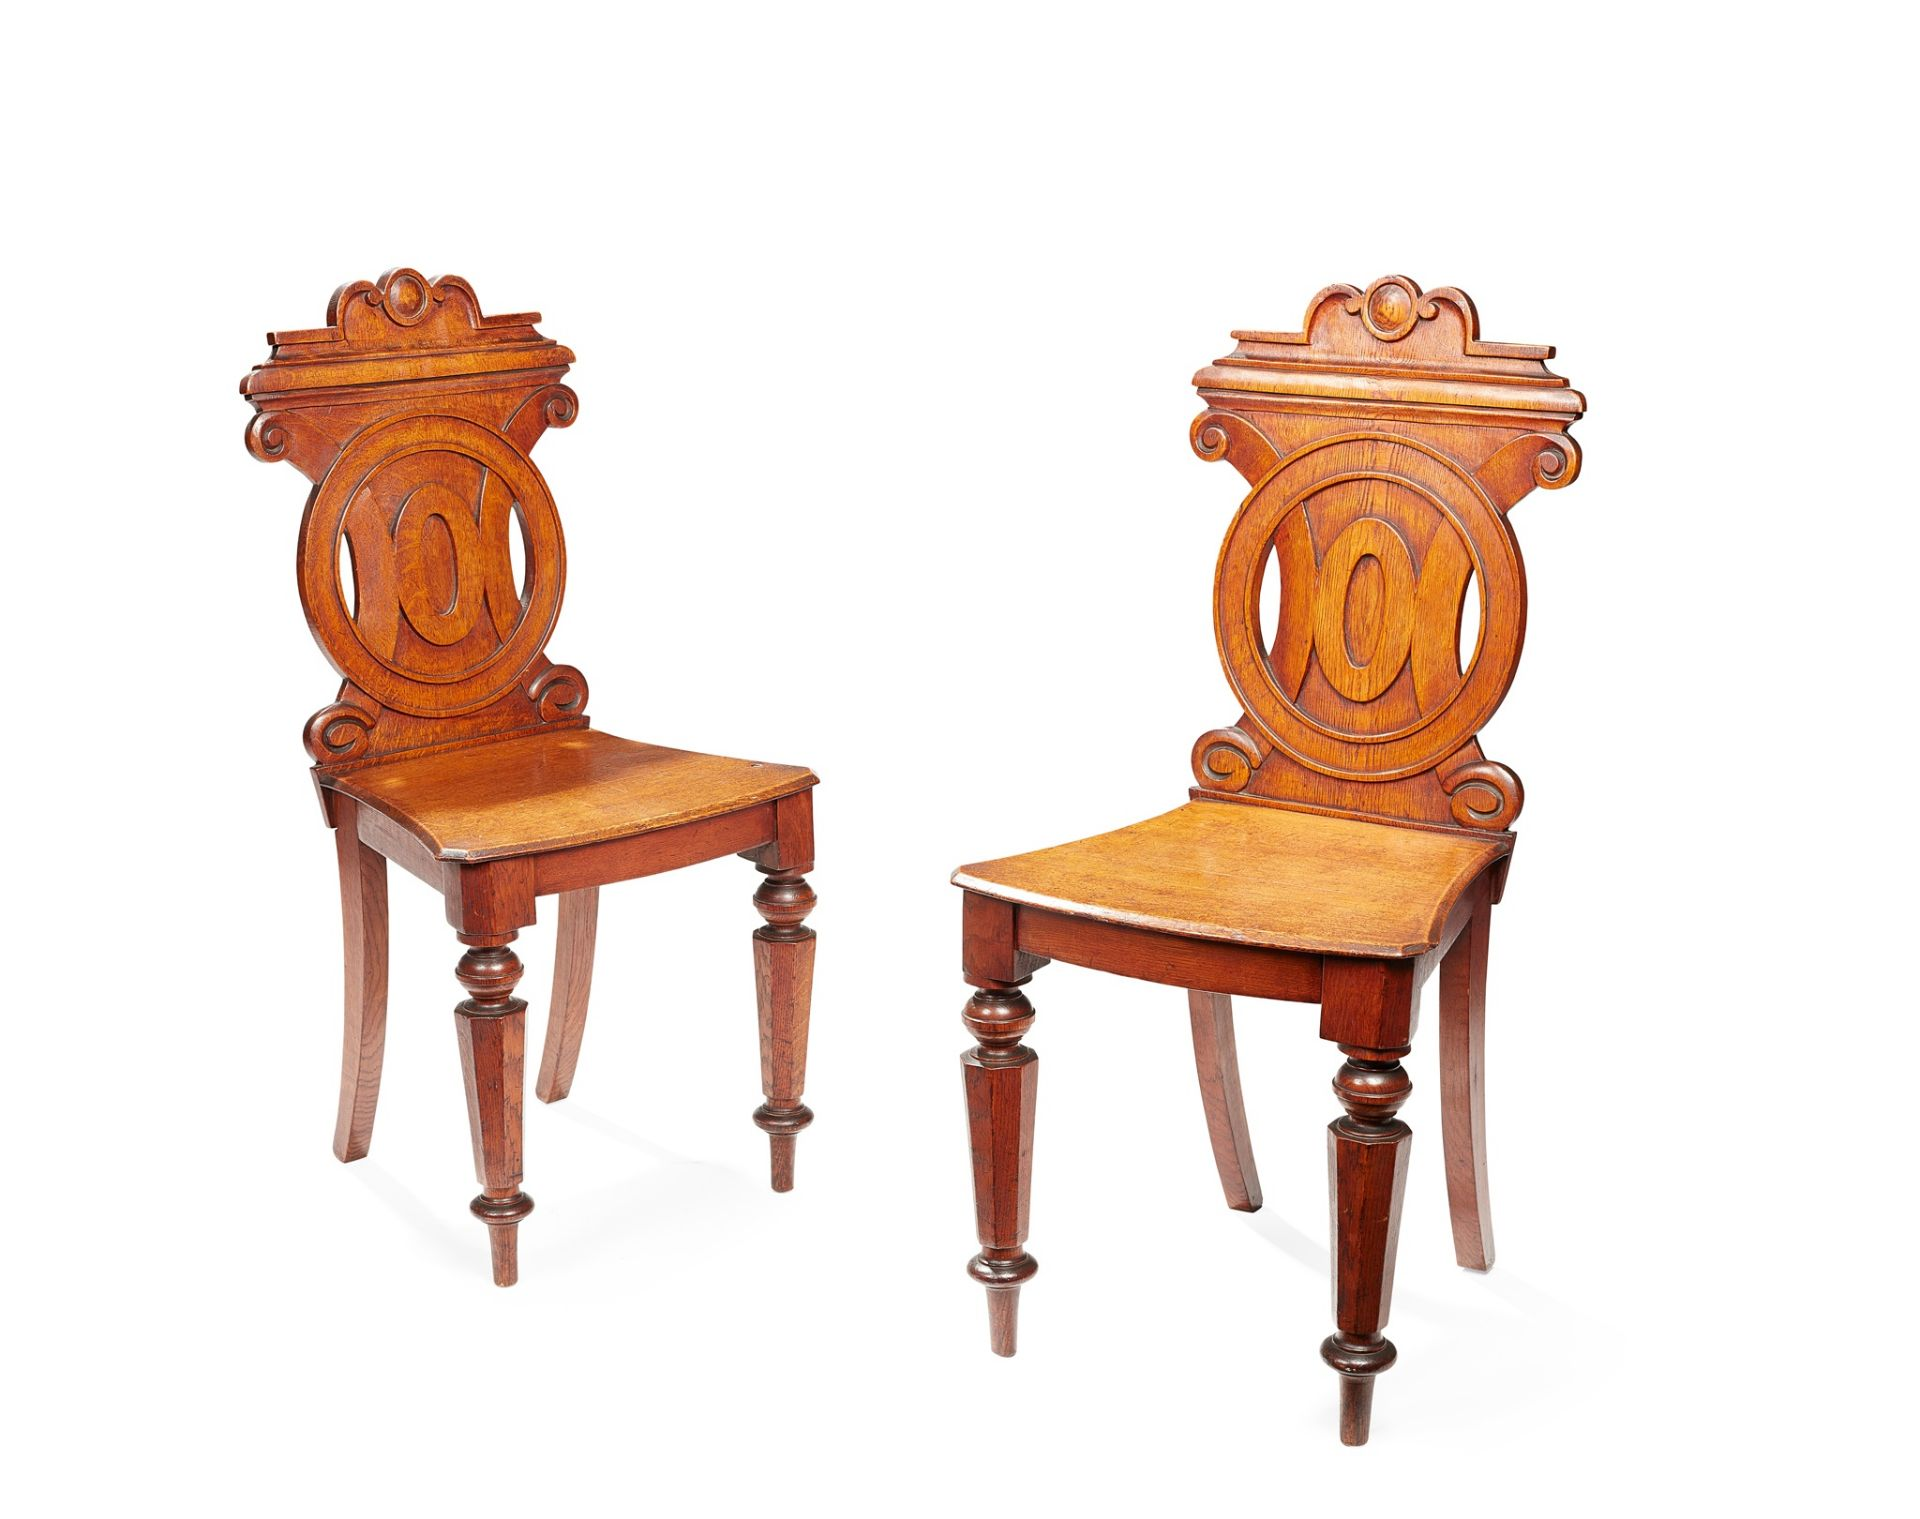 A PAIR OF VICTORIAN HALL CHAIRS MID-19TH CENTURY